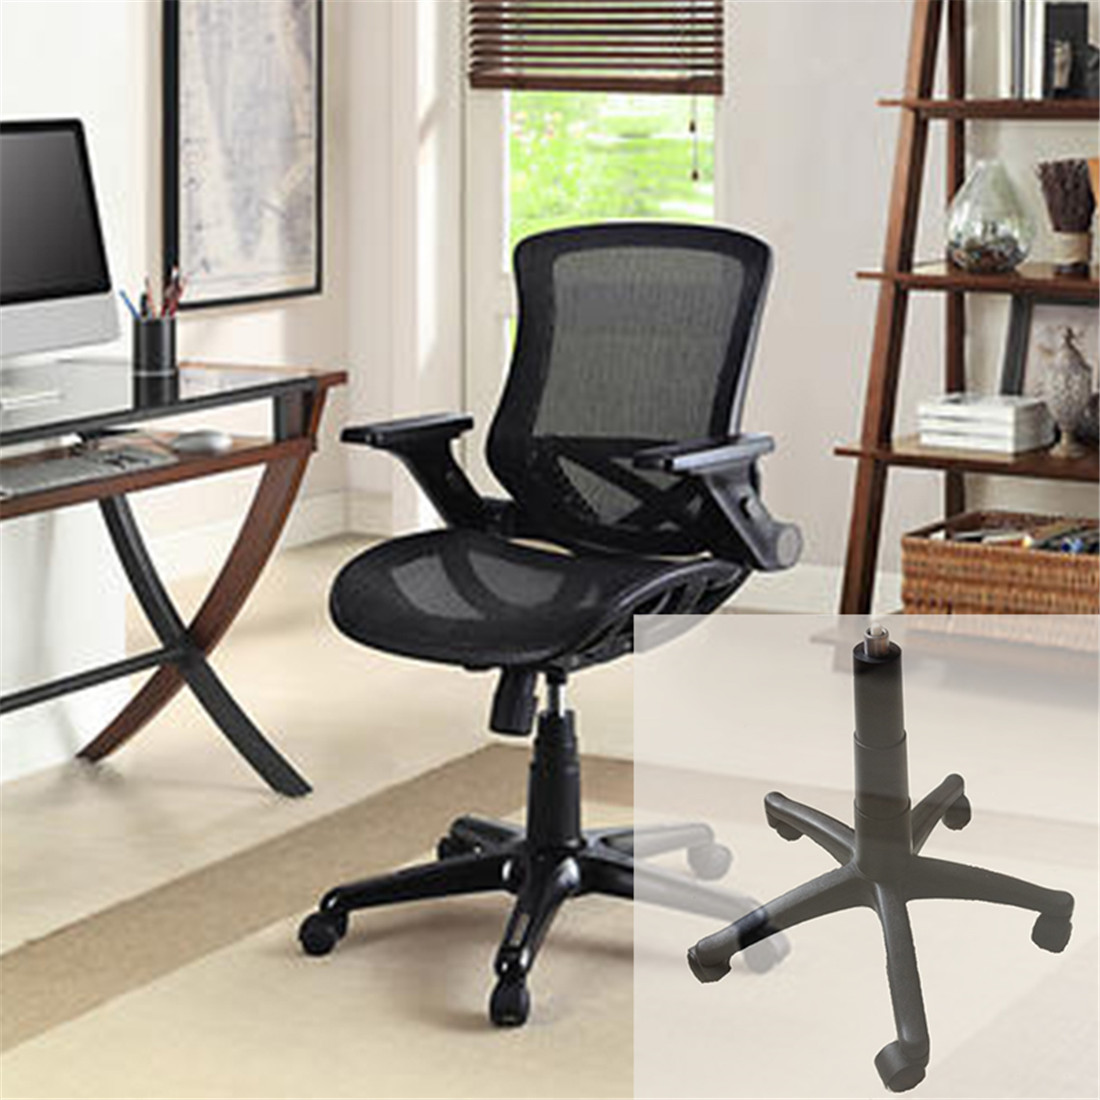 nylon chair base accessories vendors in China